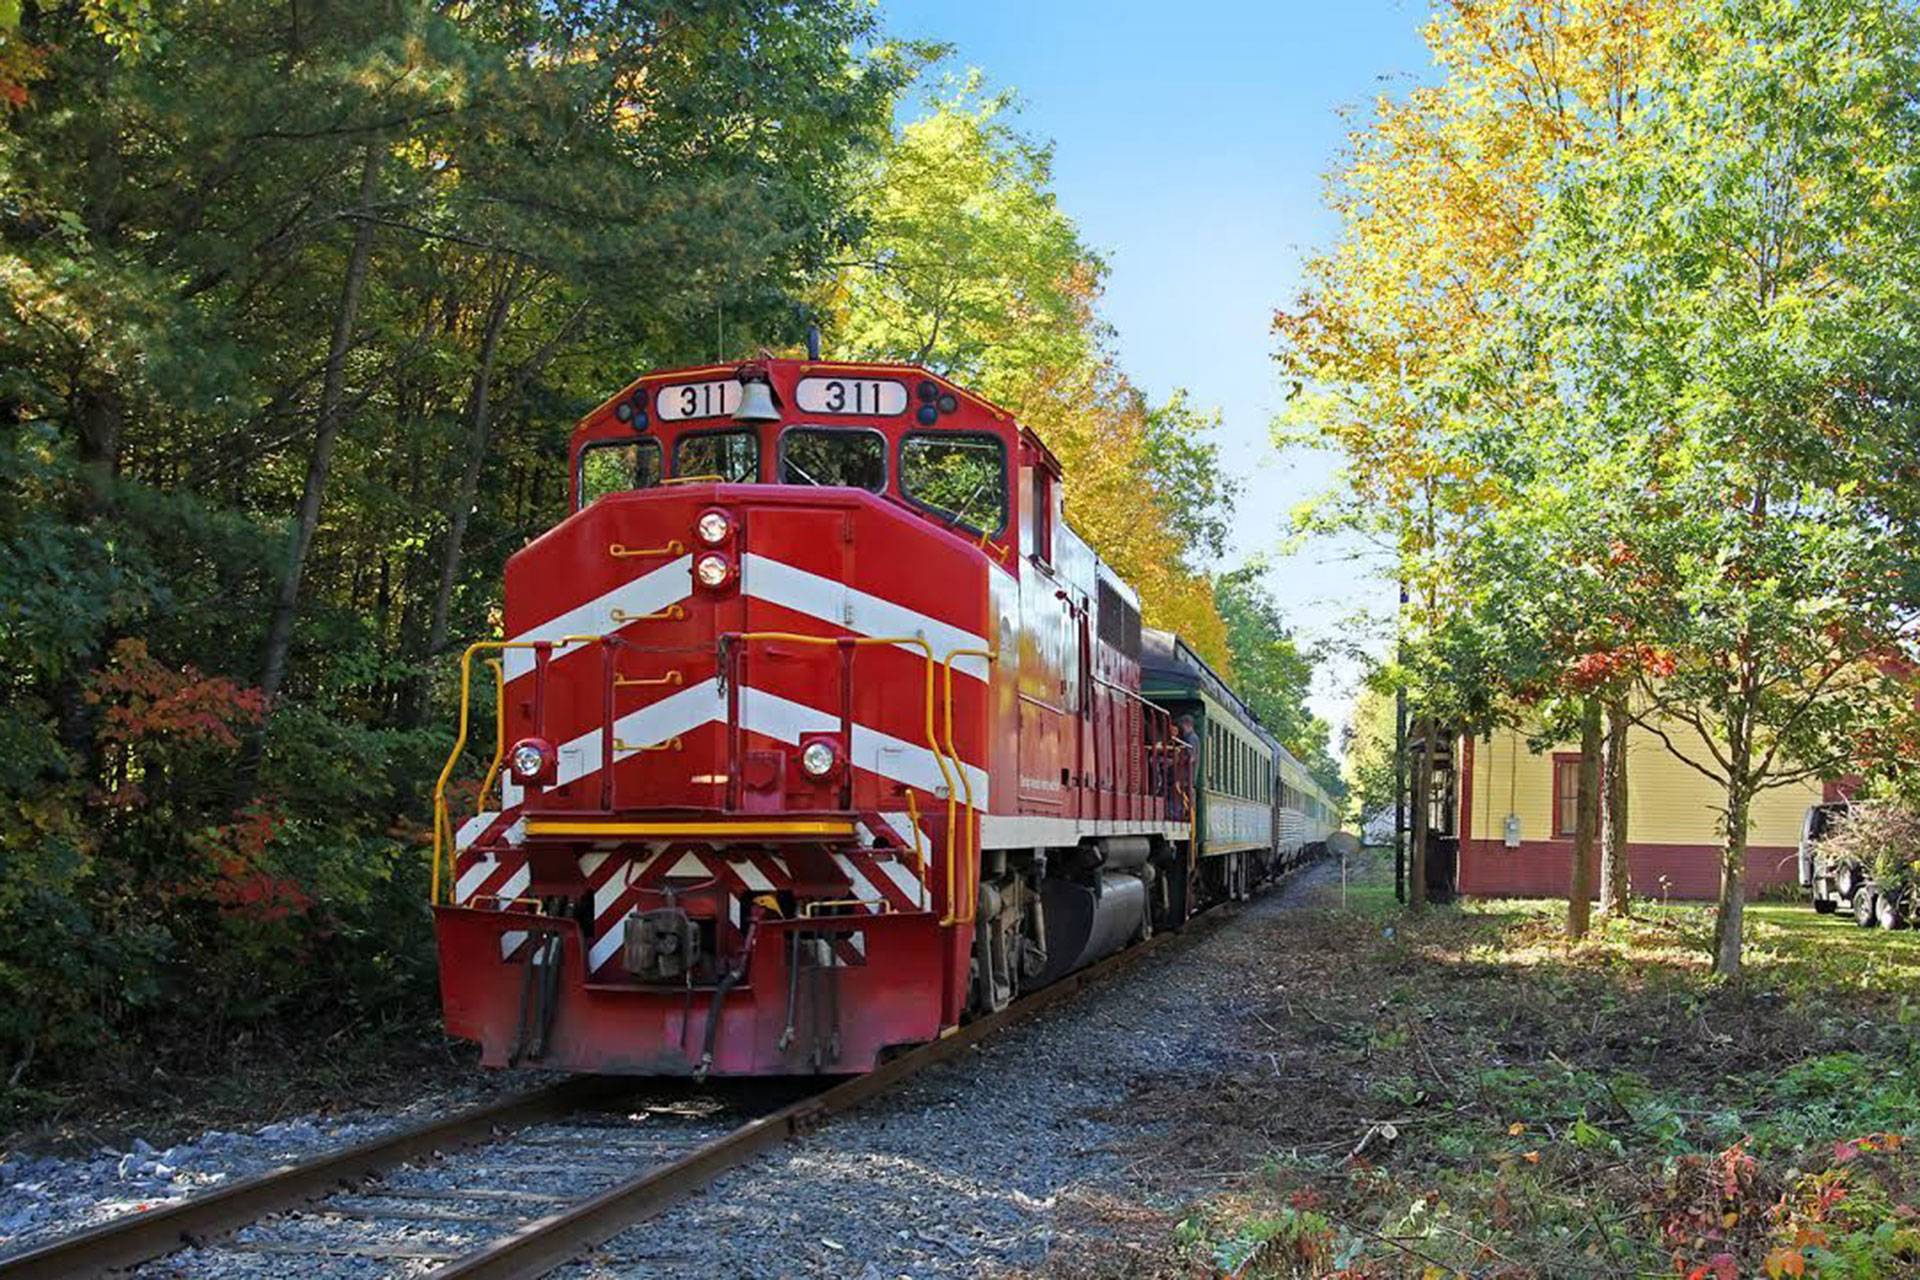 Green Mountain Railroad; Courtesy of Green Mountain Railroad